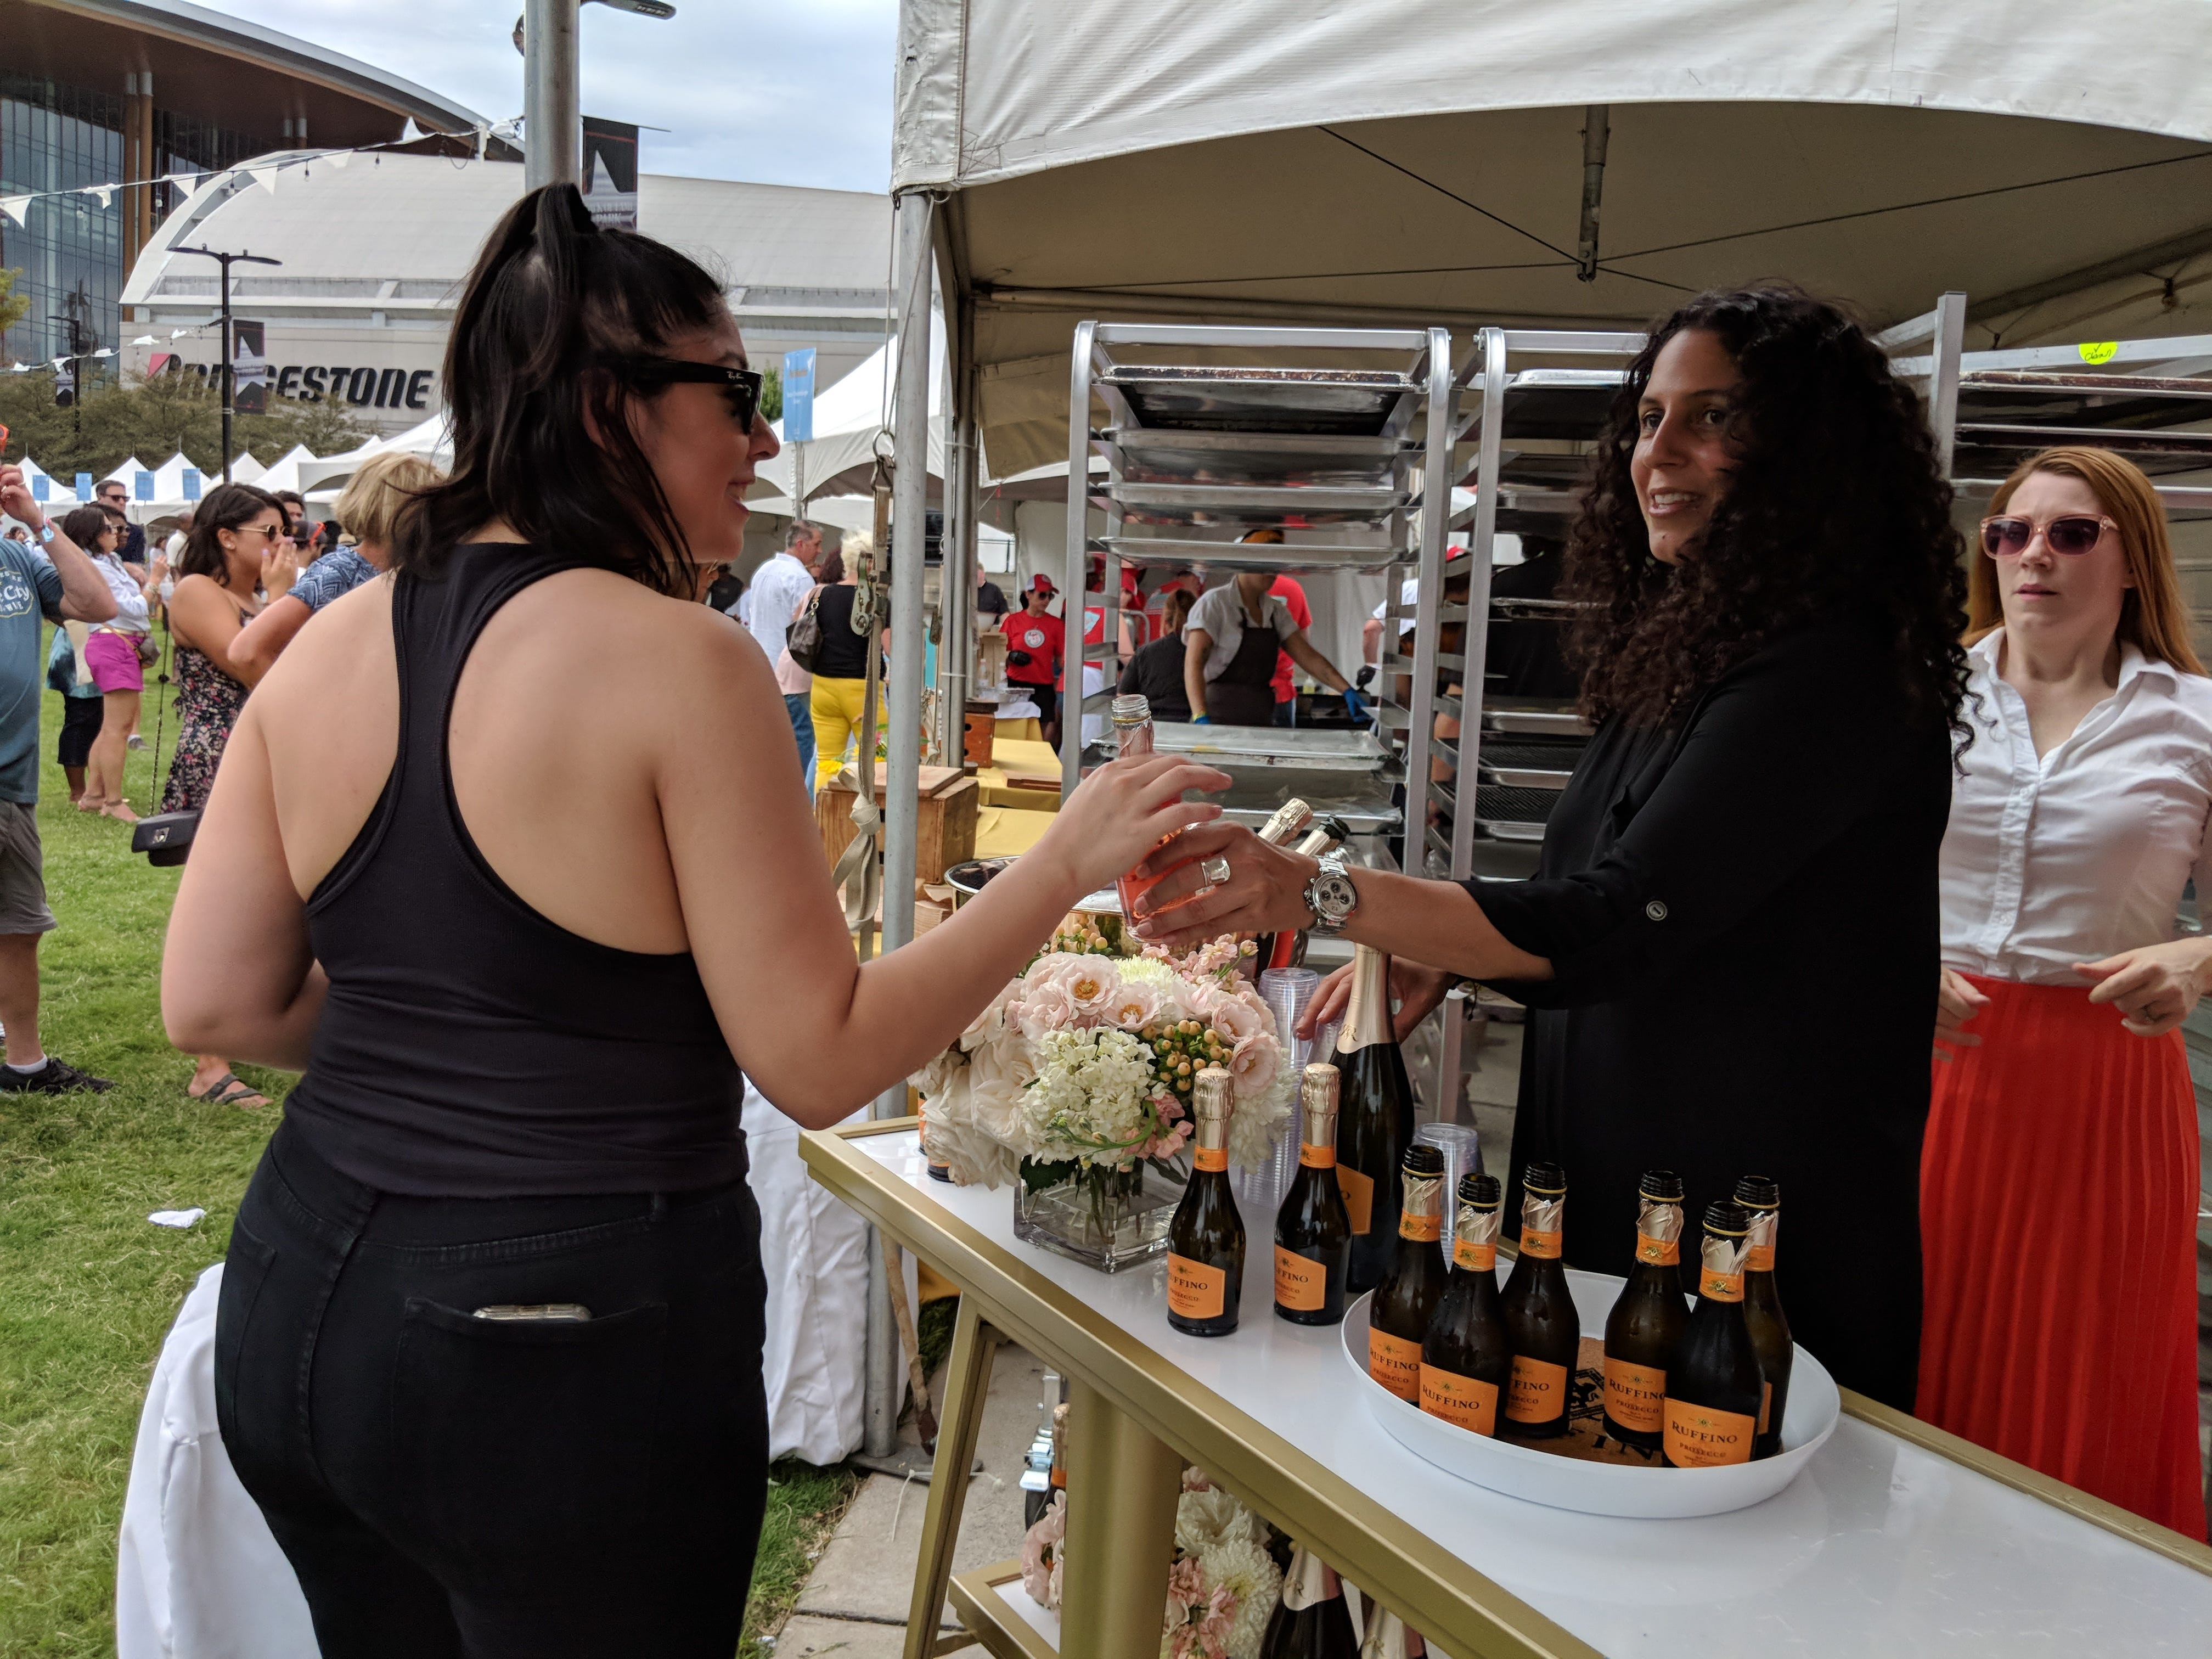 Ruffino passed out mini rosé bottles to event attendees.